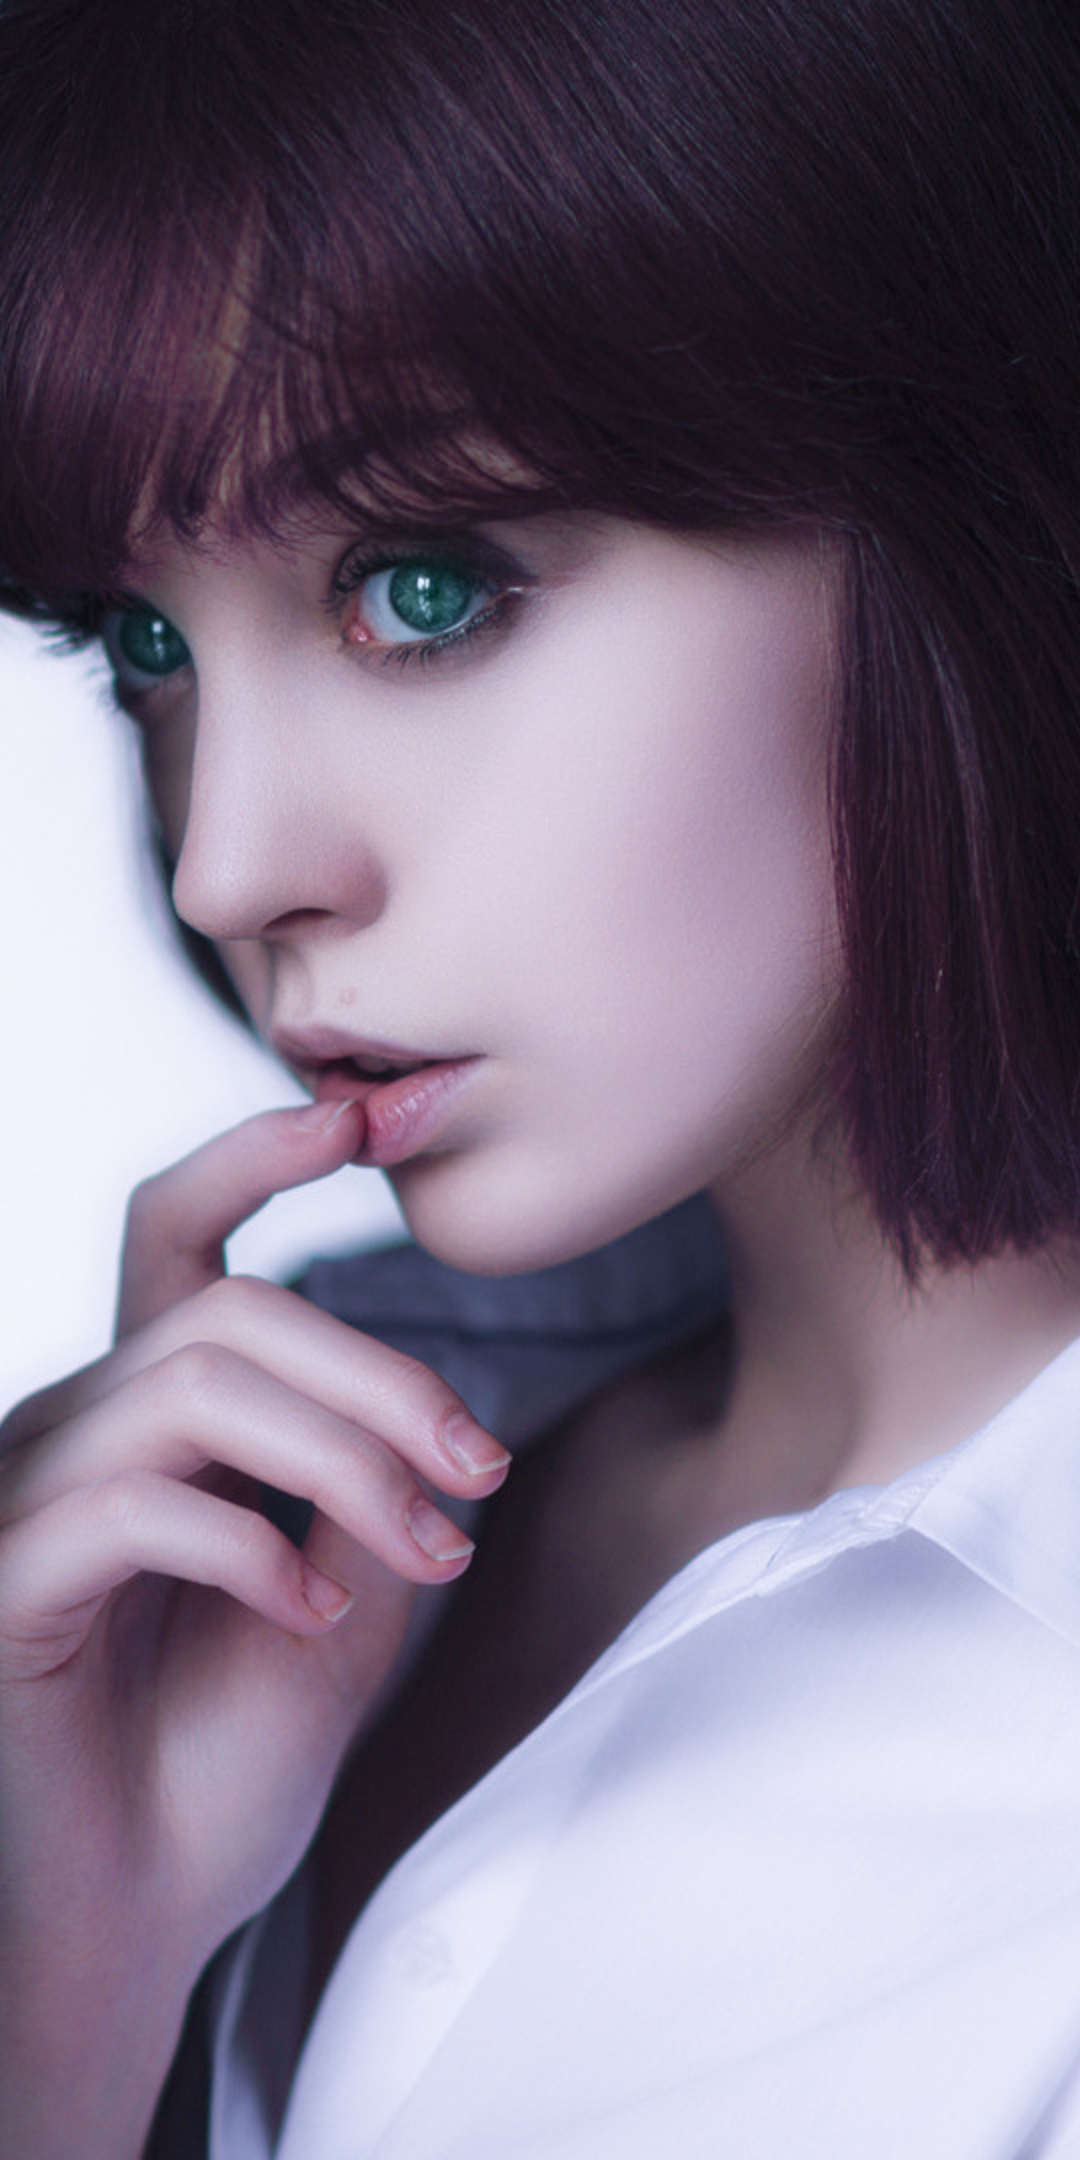 purple-hair-green-eye-model-lj.jpg